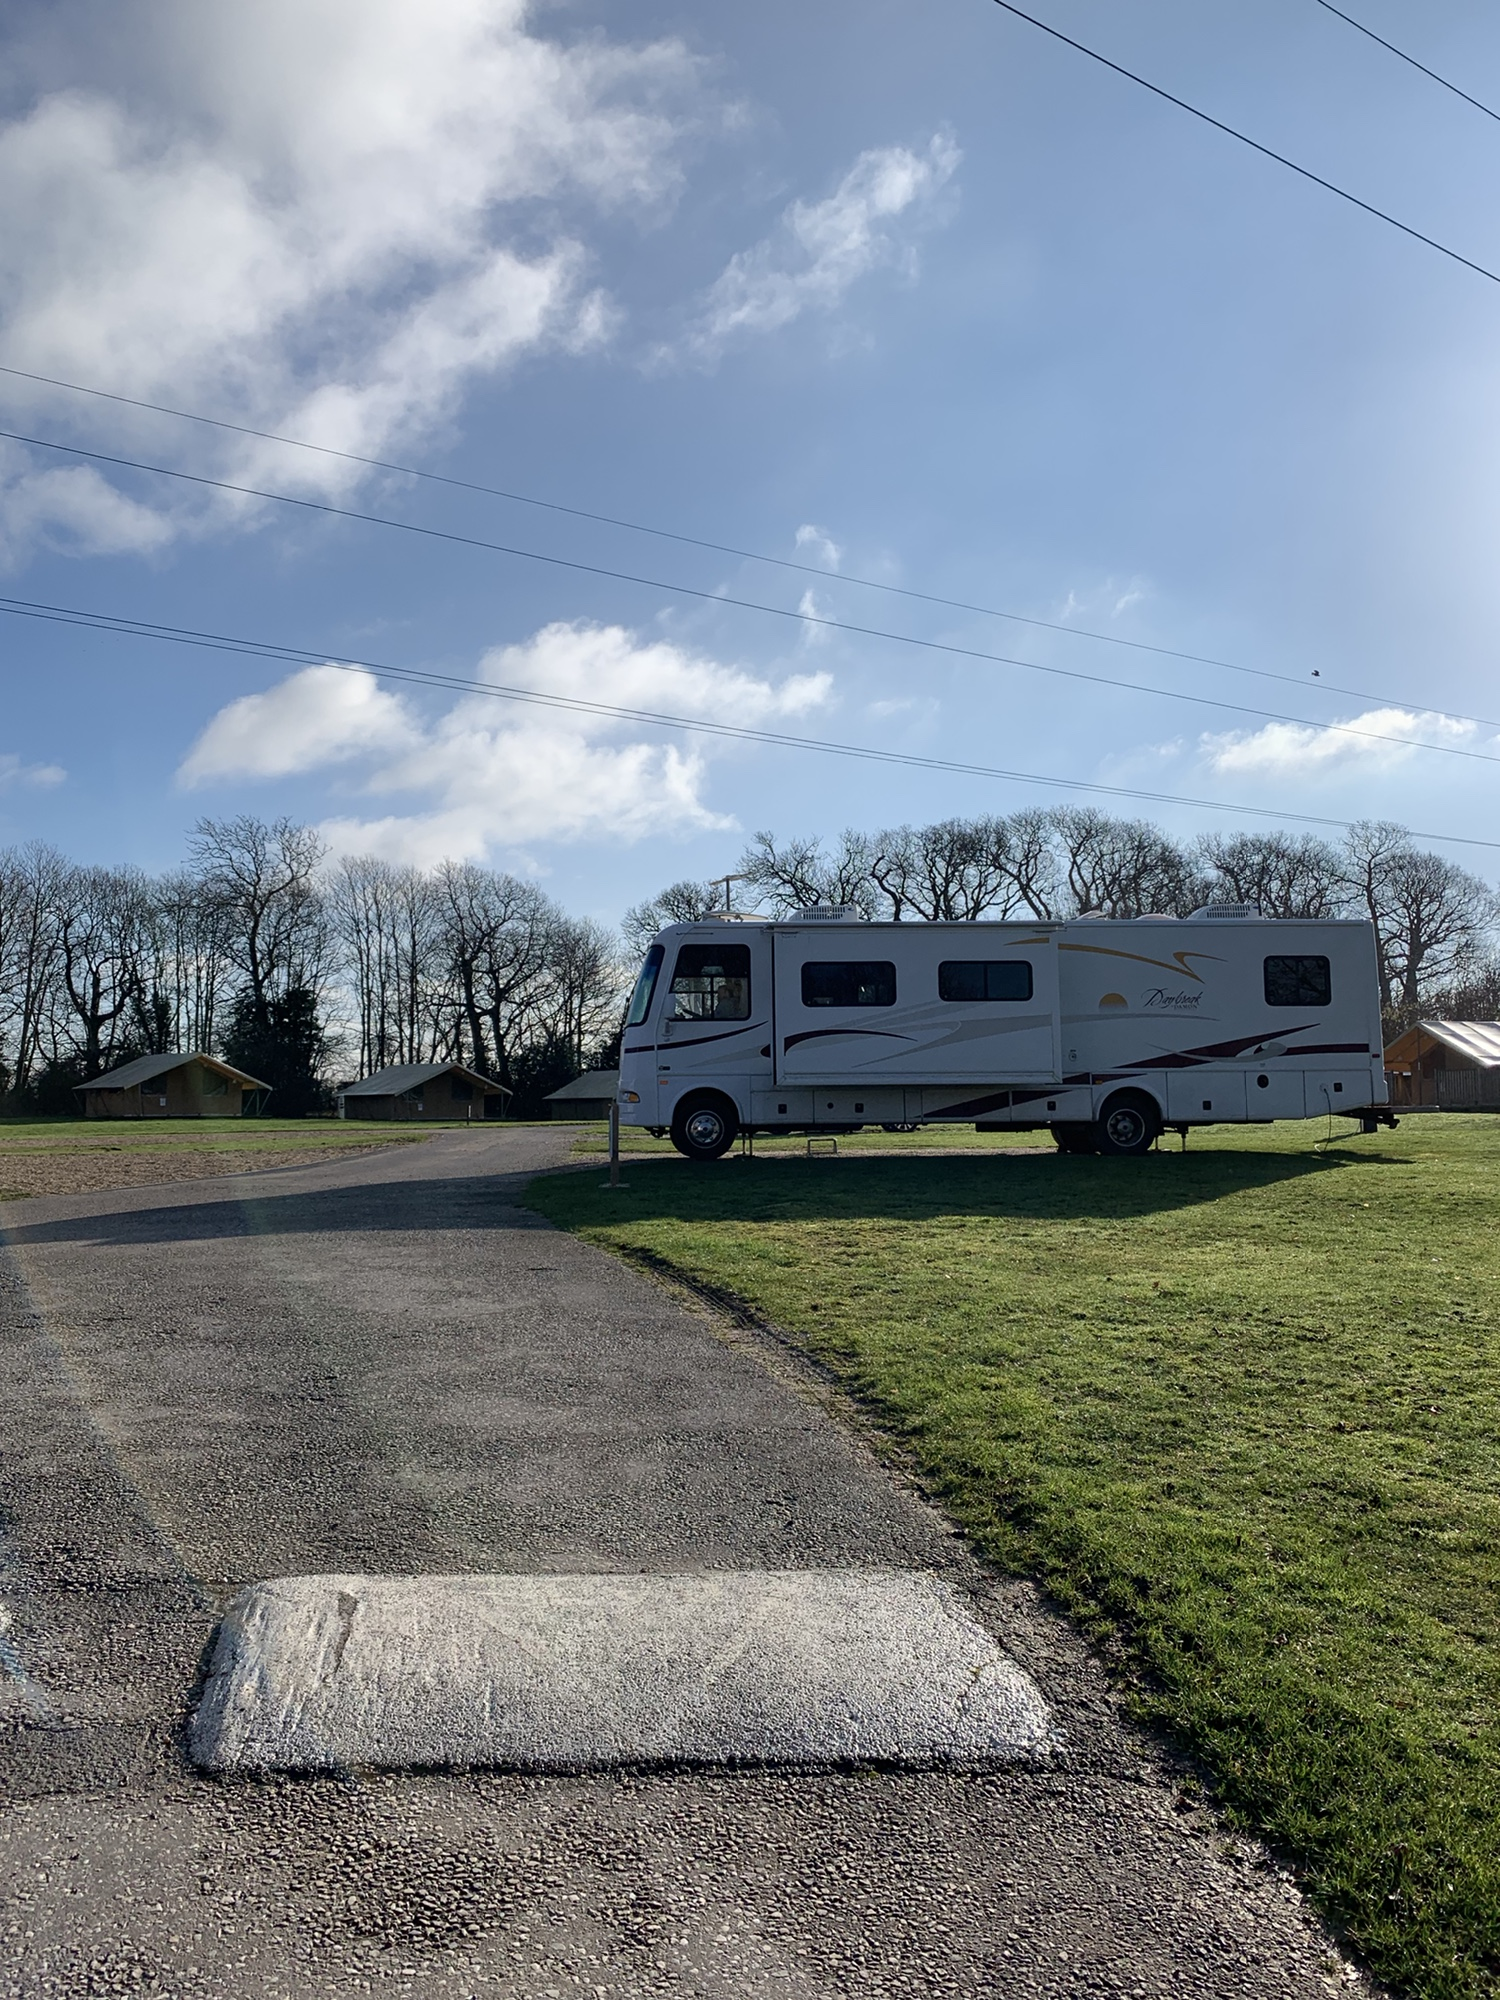 Review of Canterbury Camping and Caravan Club Site